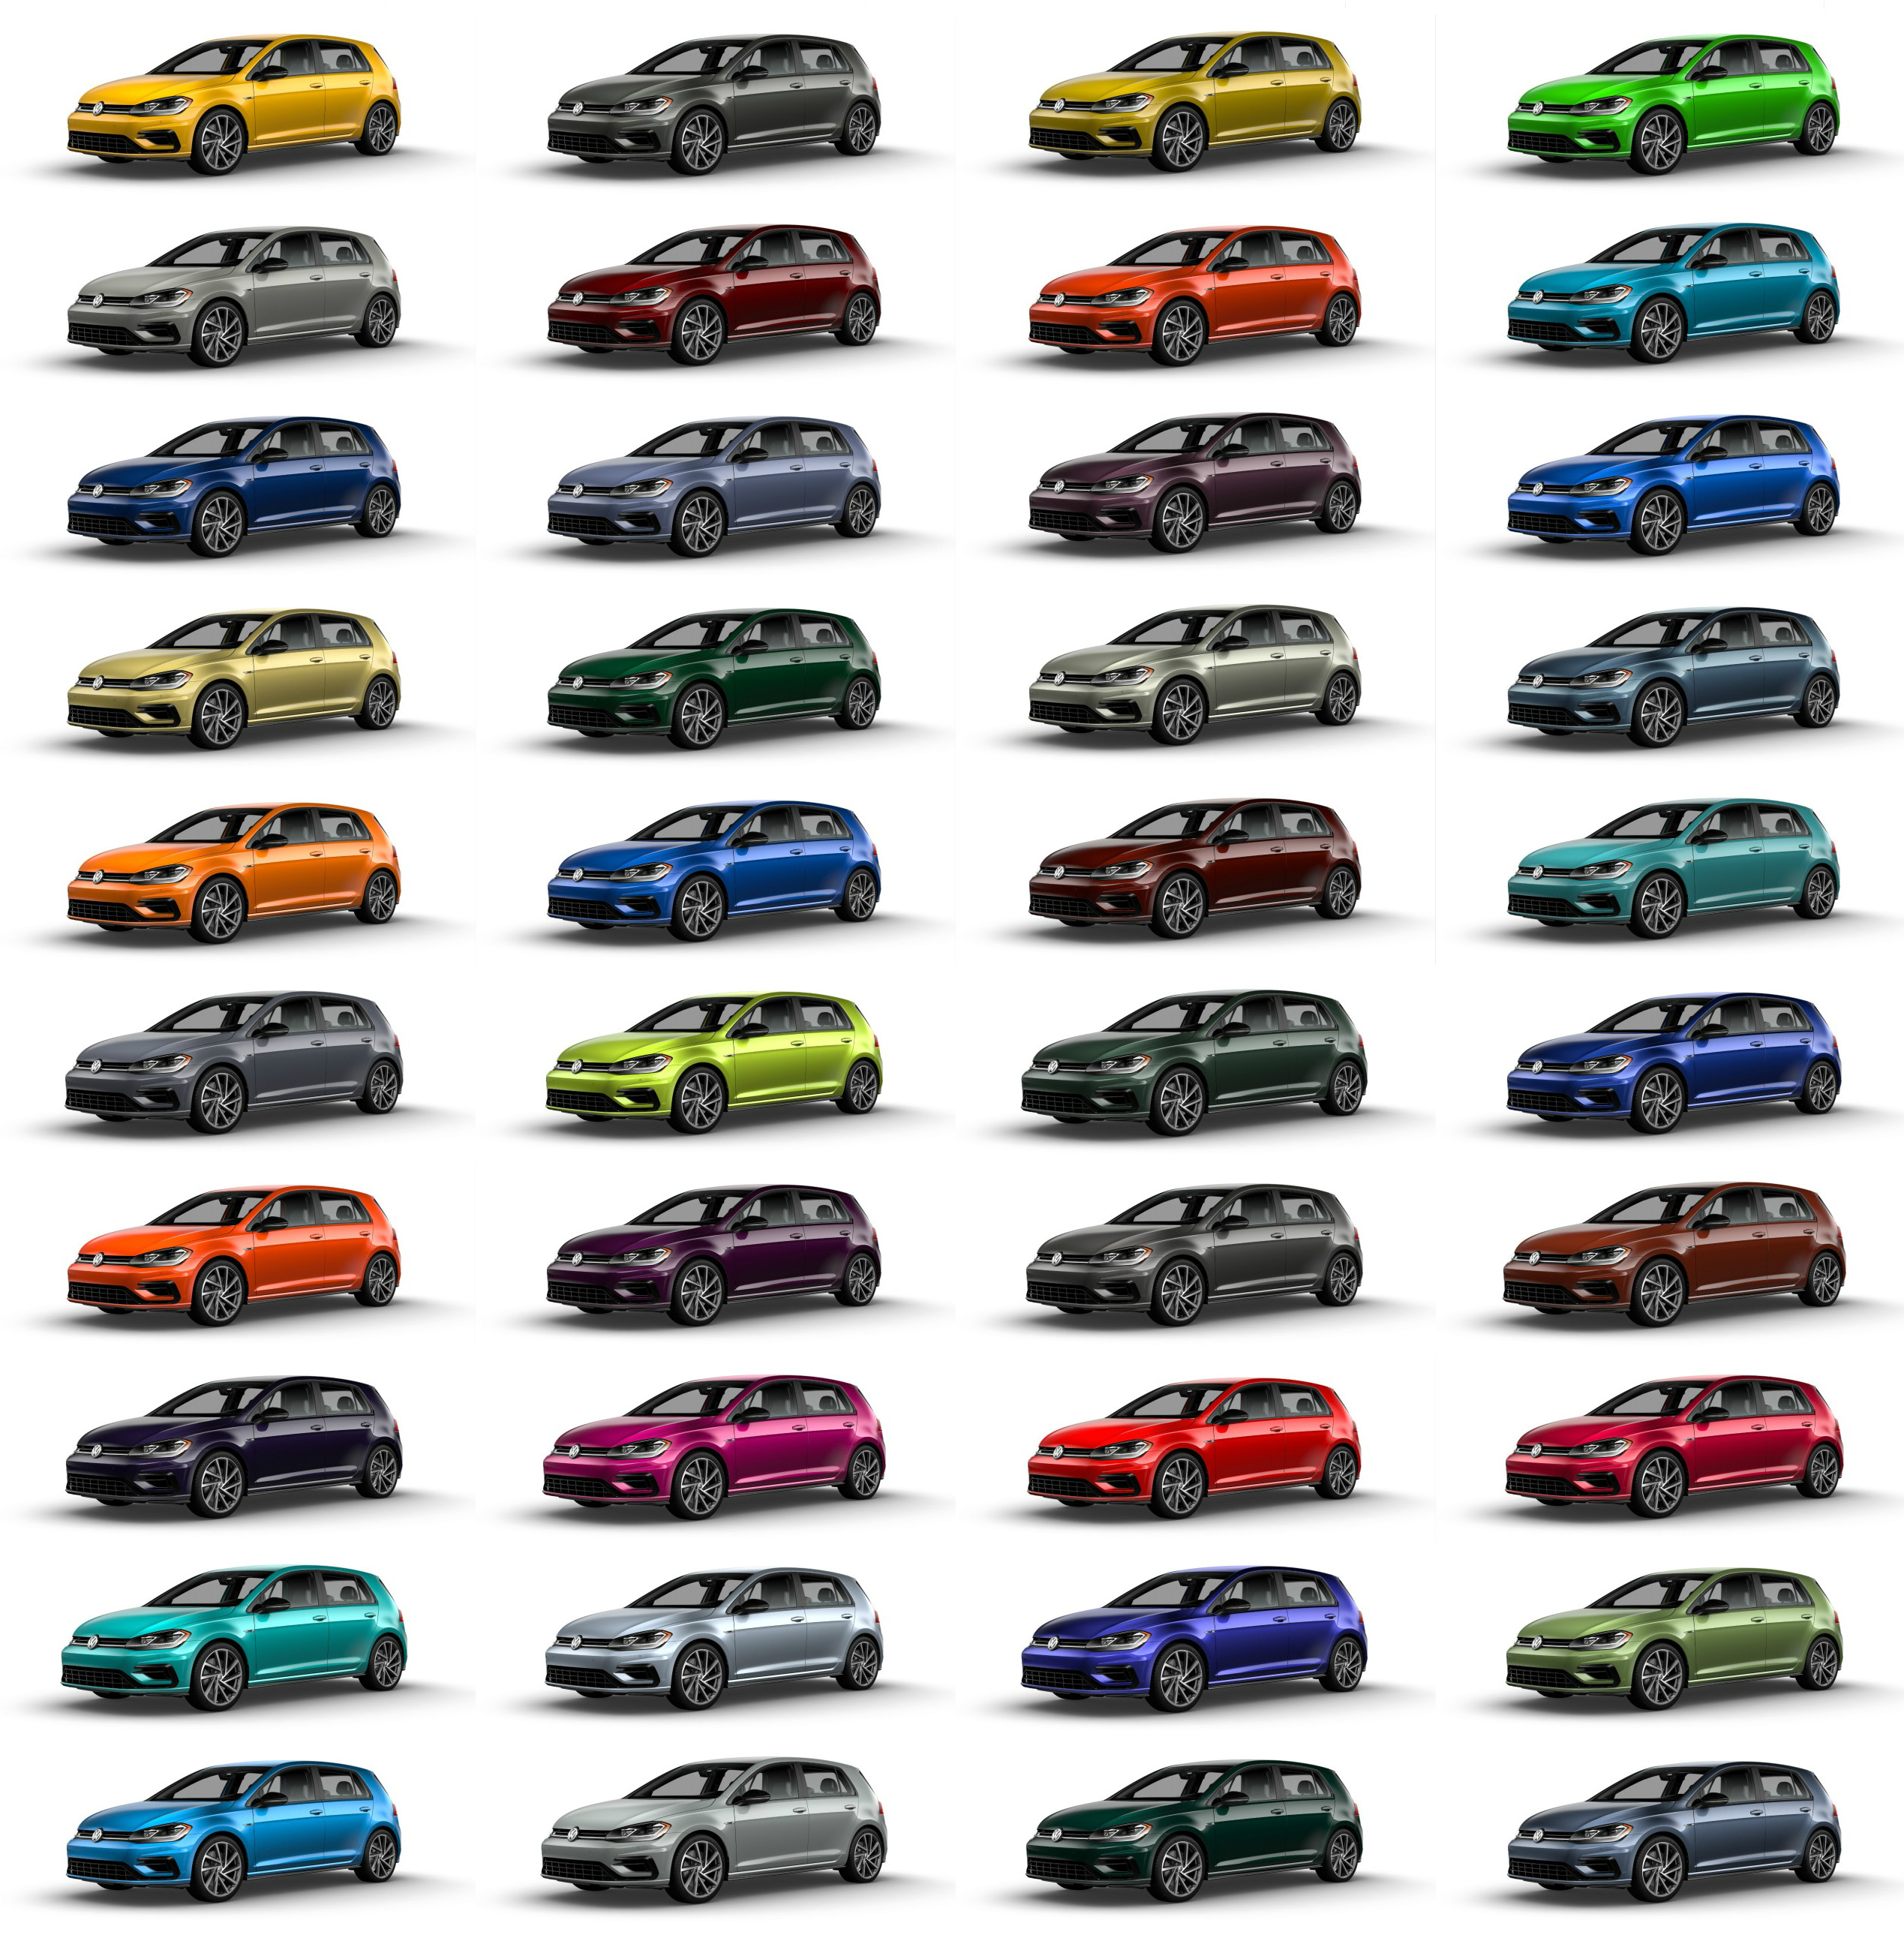 Volkswagen of America's Spektrum Programme for the 2019 Golf R hot hatch allows customers to choose from 40 custom-order colours, in addition to the five standard paint jobs available.